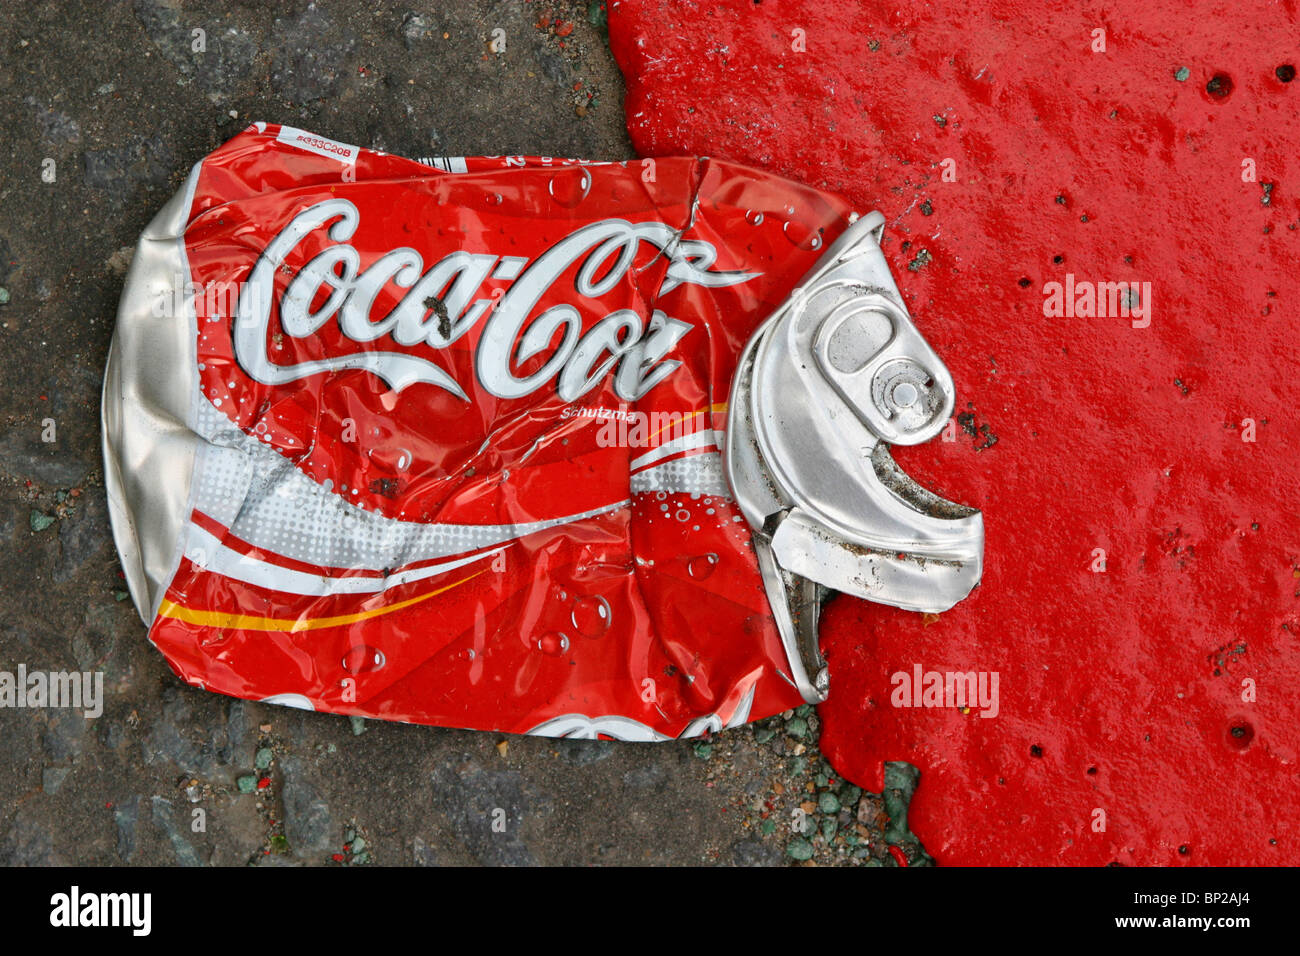 A Coca Cola can flattened in the road next to a red route road marking in bright red paint, London, UK. - Stock Image